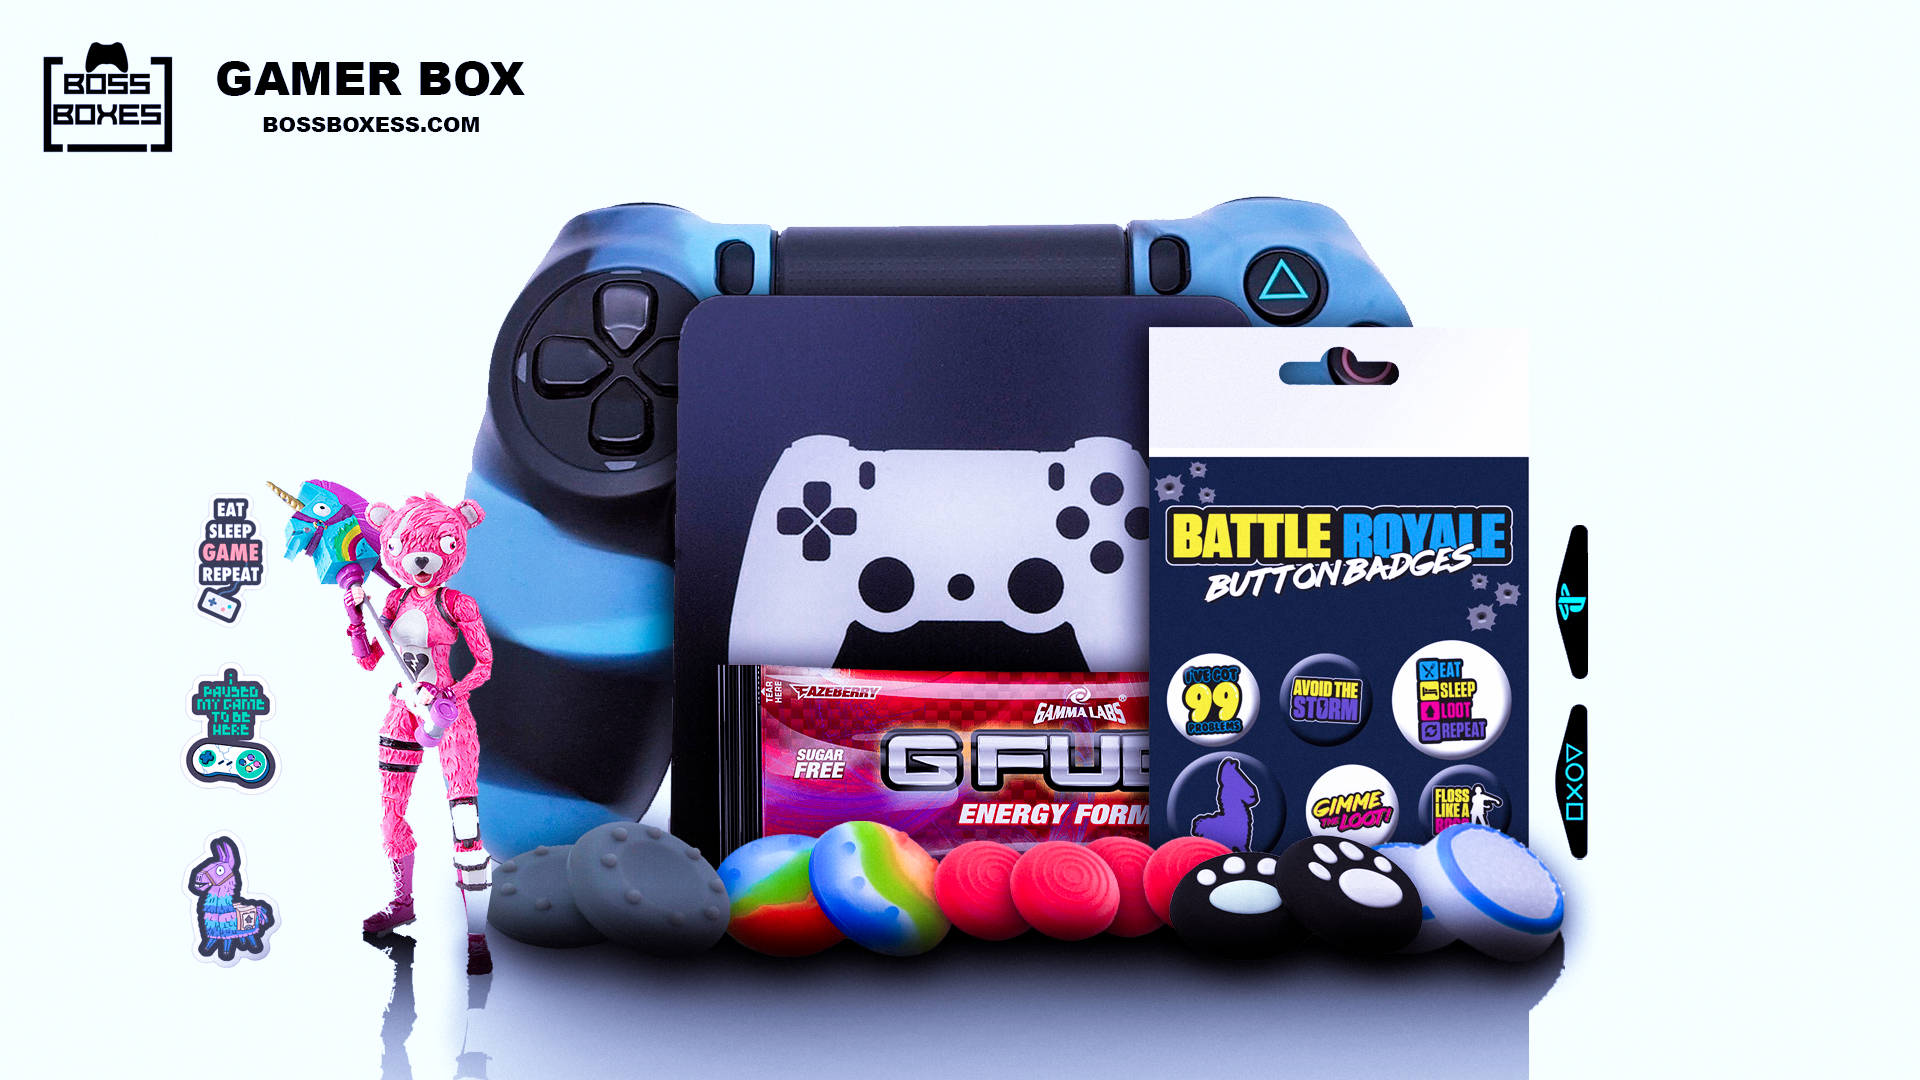 Gamer Box PS4